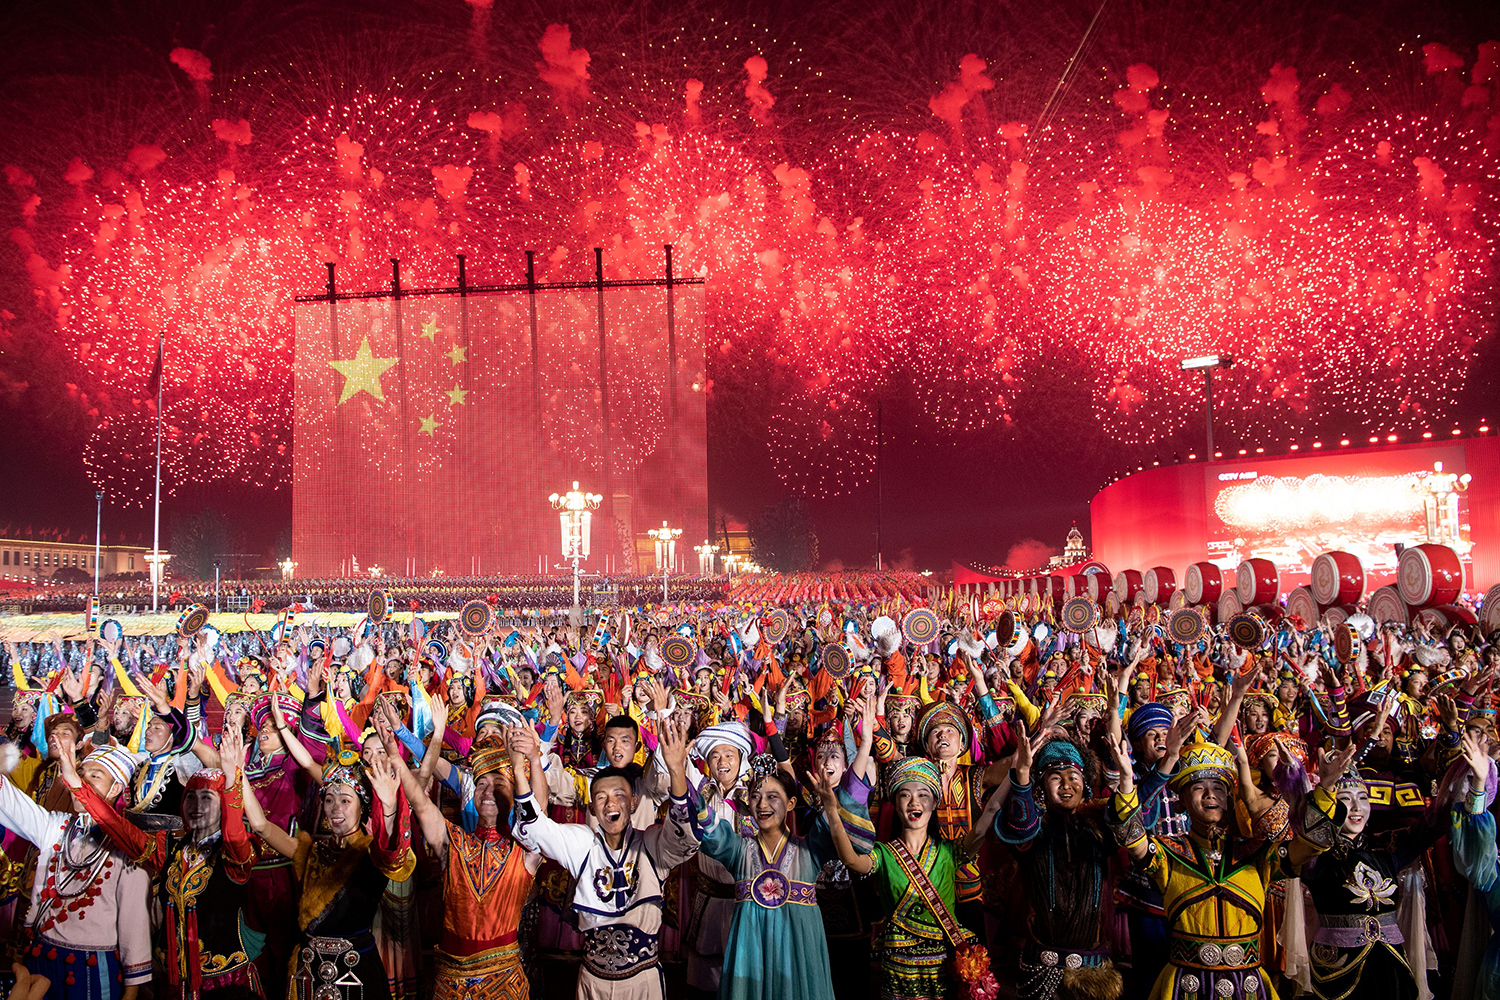 Chinese participants take part in a gala in Tiananmen Square to mark the 70th anniversary of the founding of the People's Republic of China in Beijing on Oct. 1. NOEL CELIS/AFP/Getty Images